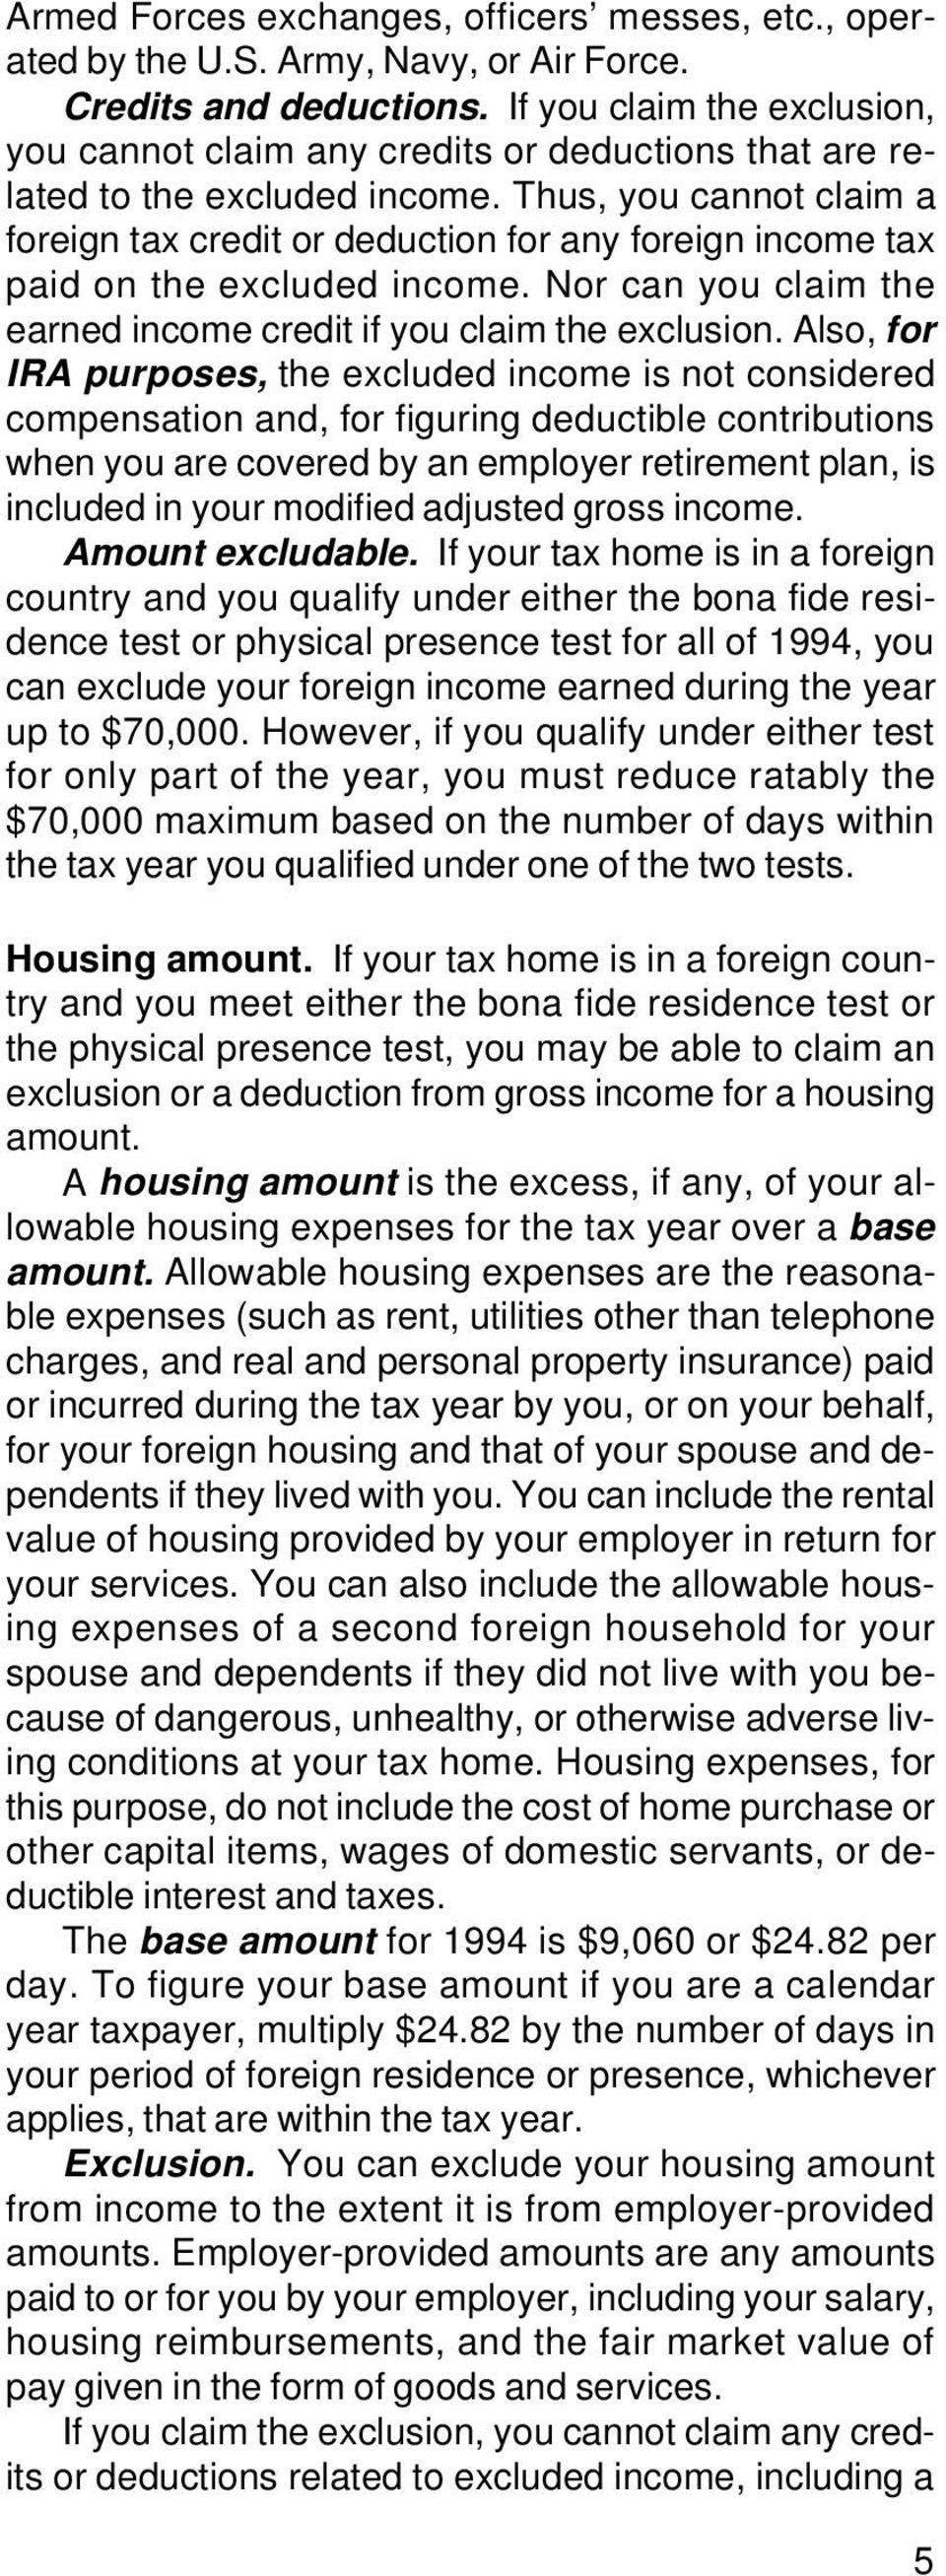 Thus, you cannot claim a foreign tax credit or deduction for any foreign income tax paid on the excluded income. Nor can you claim the earned income credit if you claim the exclusion.